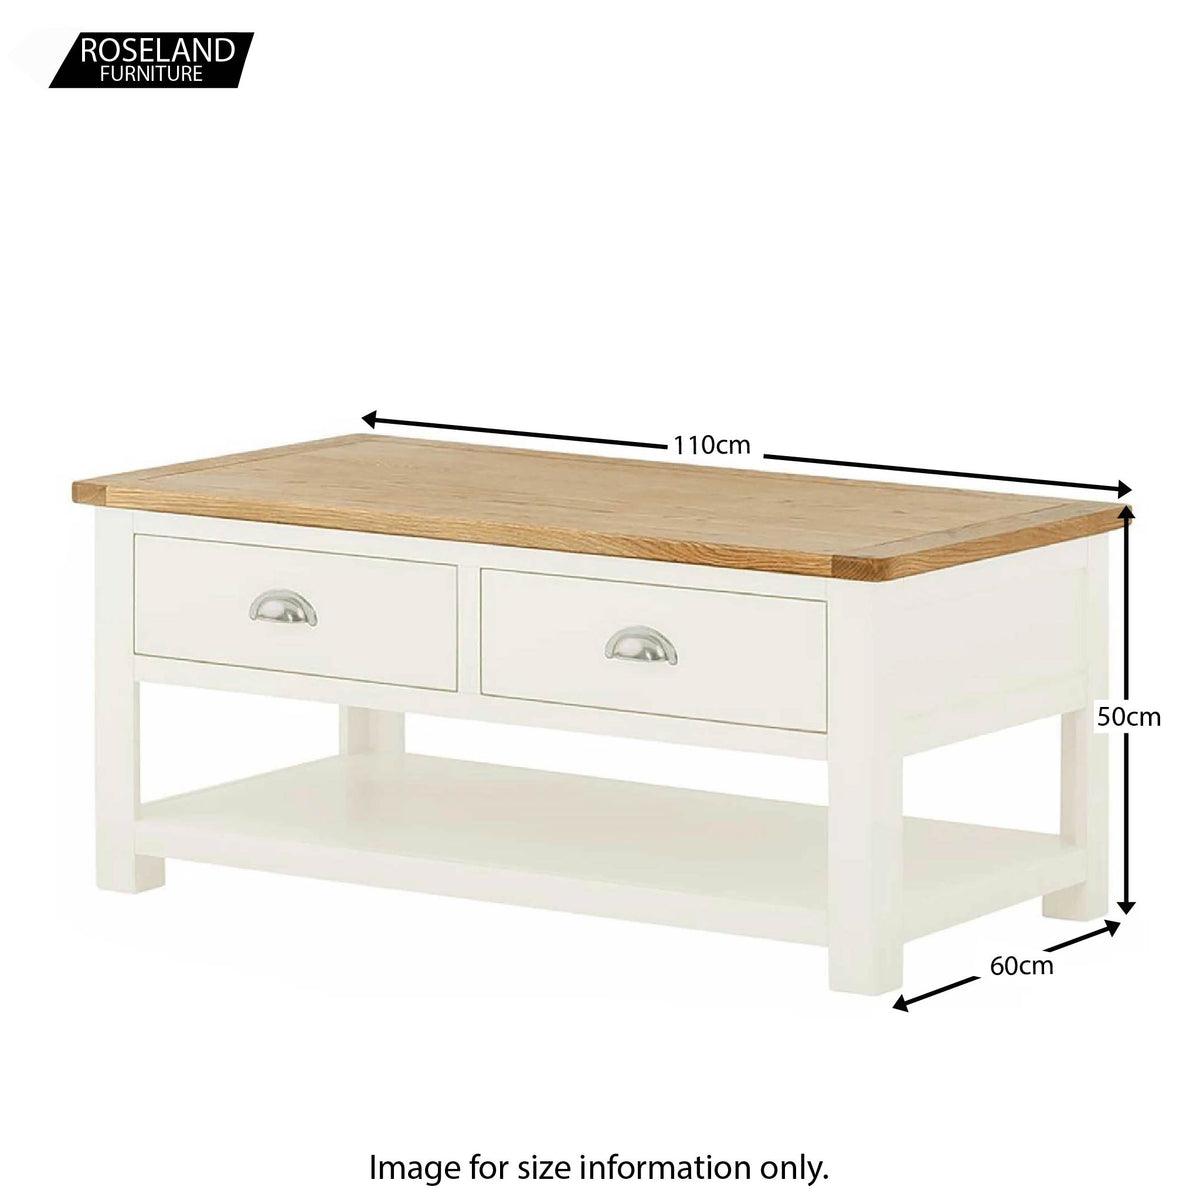 Padstow White 110cm Coffee Table - Size Guide